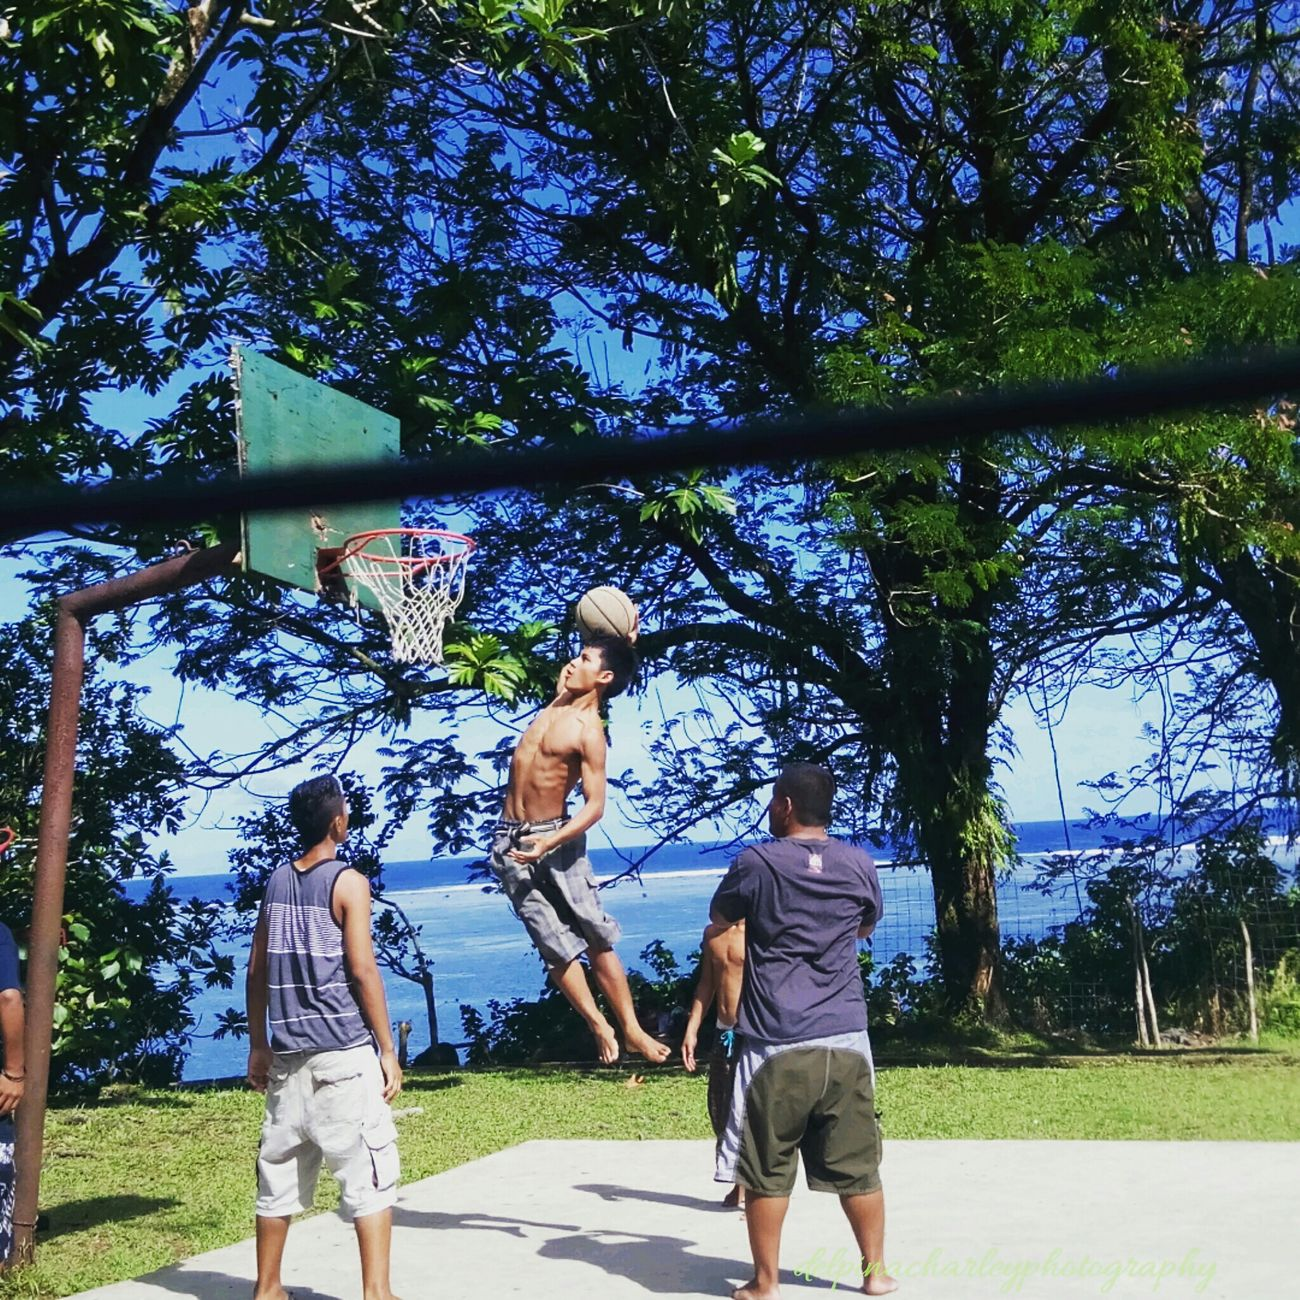 Sport In The City Check This Out Weekendretreat Taking Photos Kosrae Slamdunkcontest Islandboys Islandlife Capture The Moment Mountain Hiking